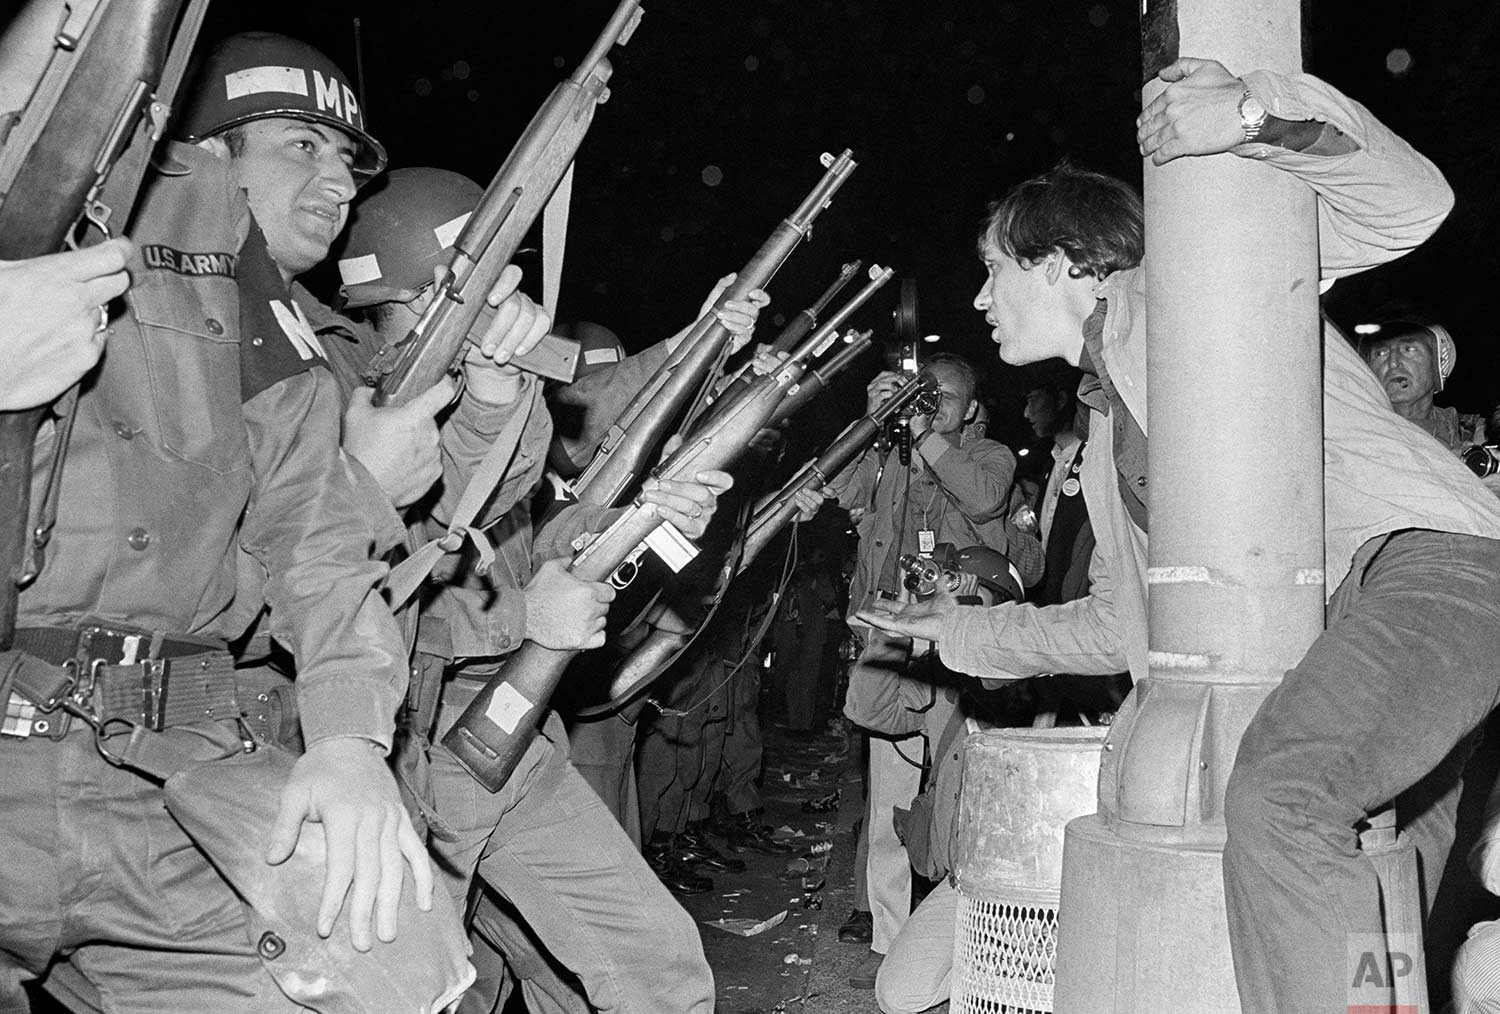 Jeers greet Chicago police officers as they attempt to disperse demonstrators outside the Conrad Hilton, Democratic Convention headquarters hotel Wednesday, August 29, 1968. (AP Photo/RHS)